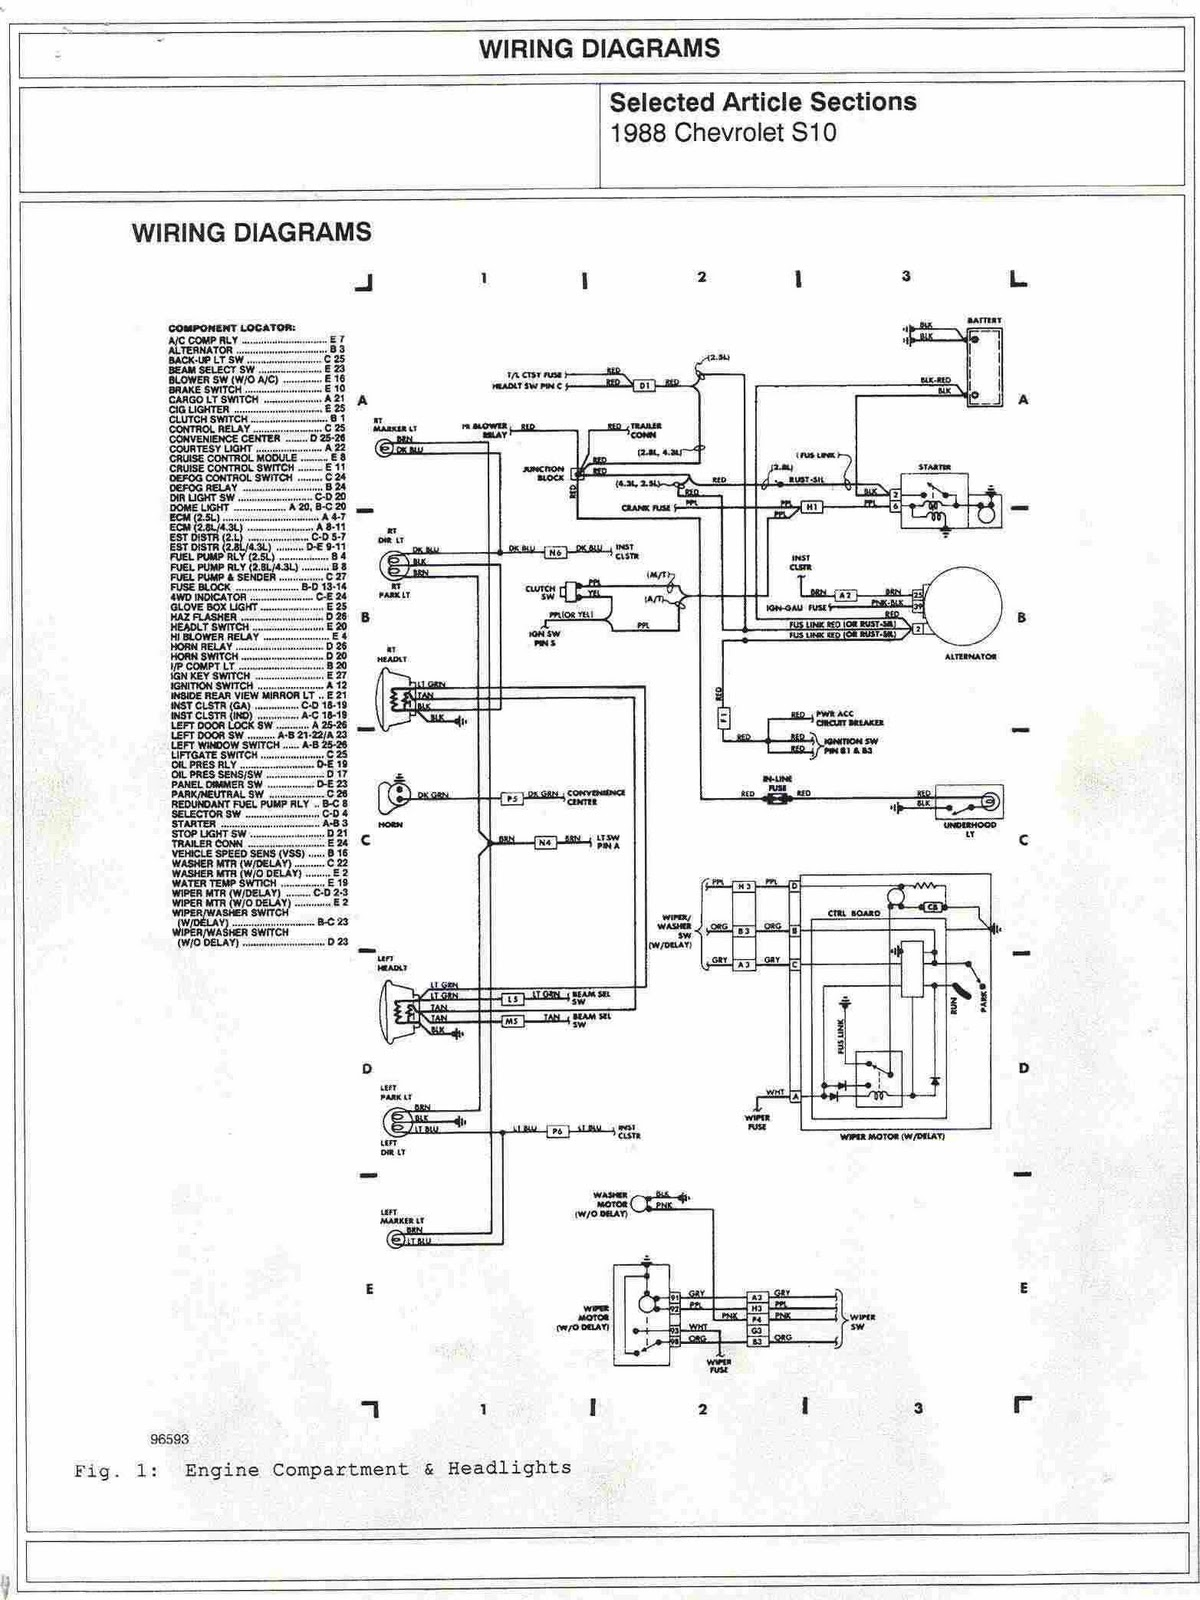 1988+Chevrolet+S10+Engine+Compartment+and+Headlights+Wiring+Diagrams 95 s10 wiring diagram 95 tahoe wiring diagram \u2022 wiring diagrams chevy s10 wiring diagram at bayanpartner.co